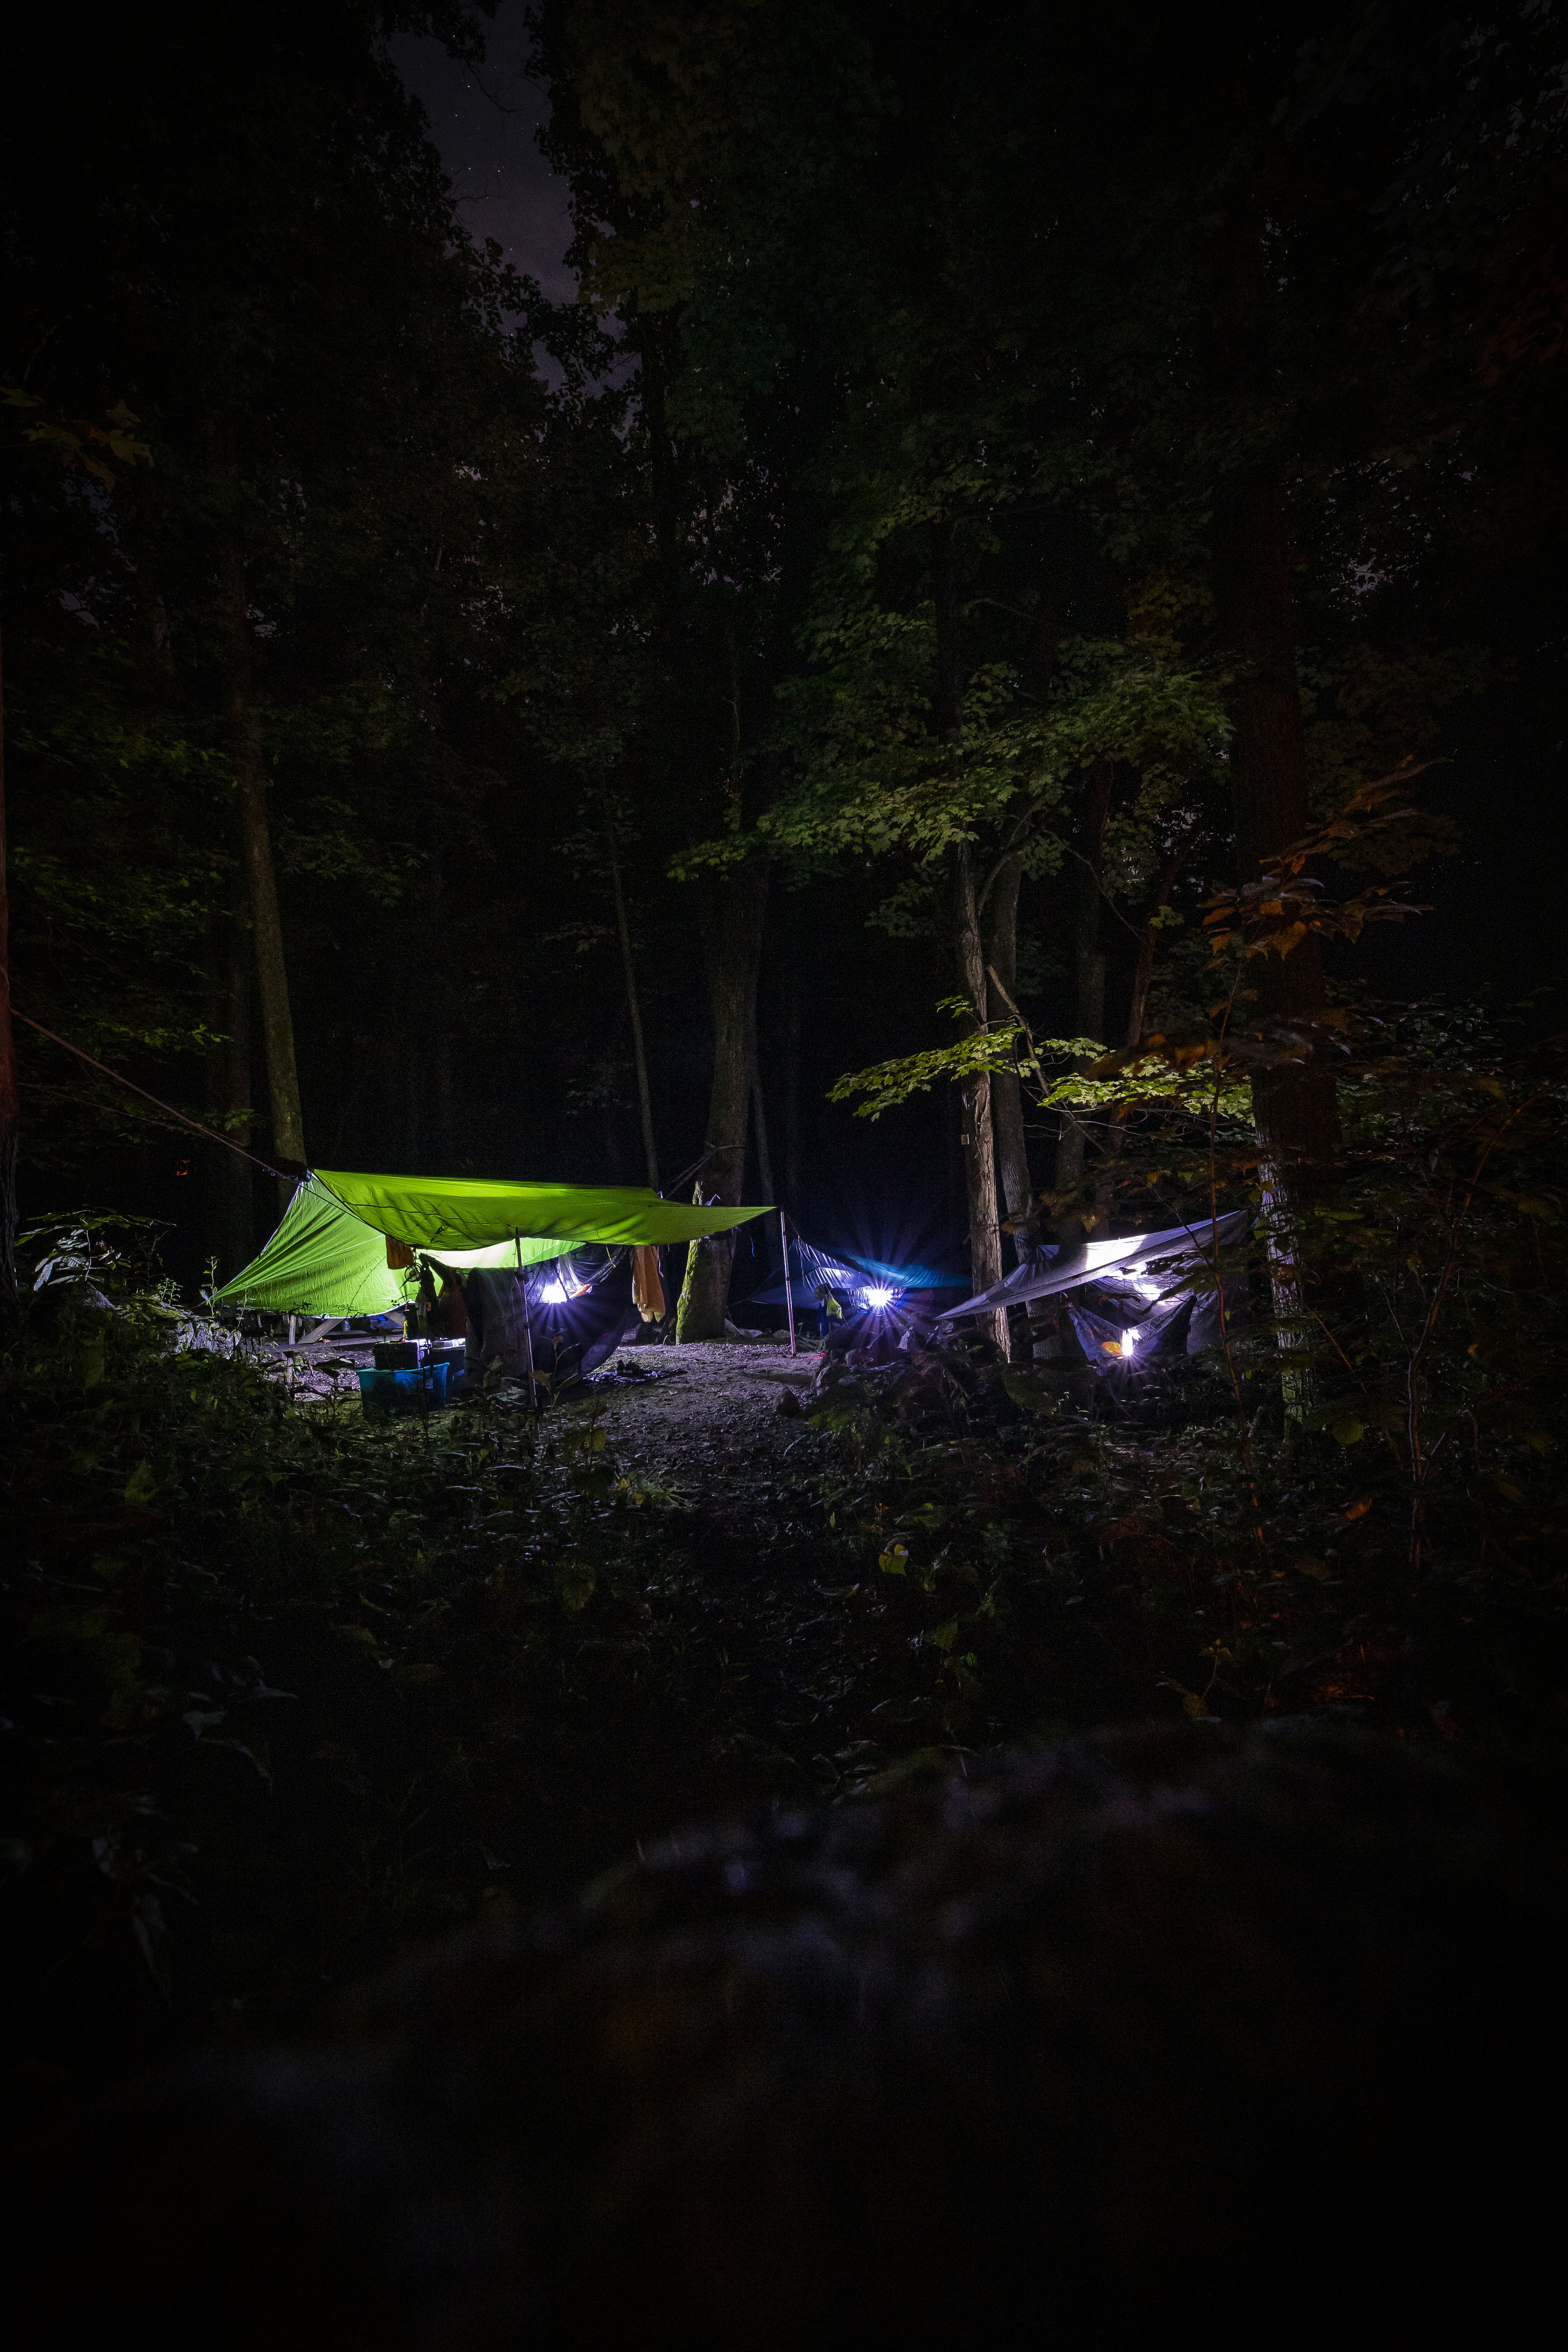 crabtree falls campground, misty saves the day, hammock camping virginia